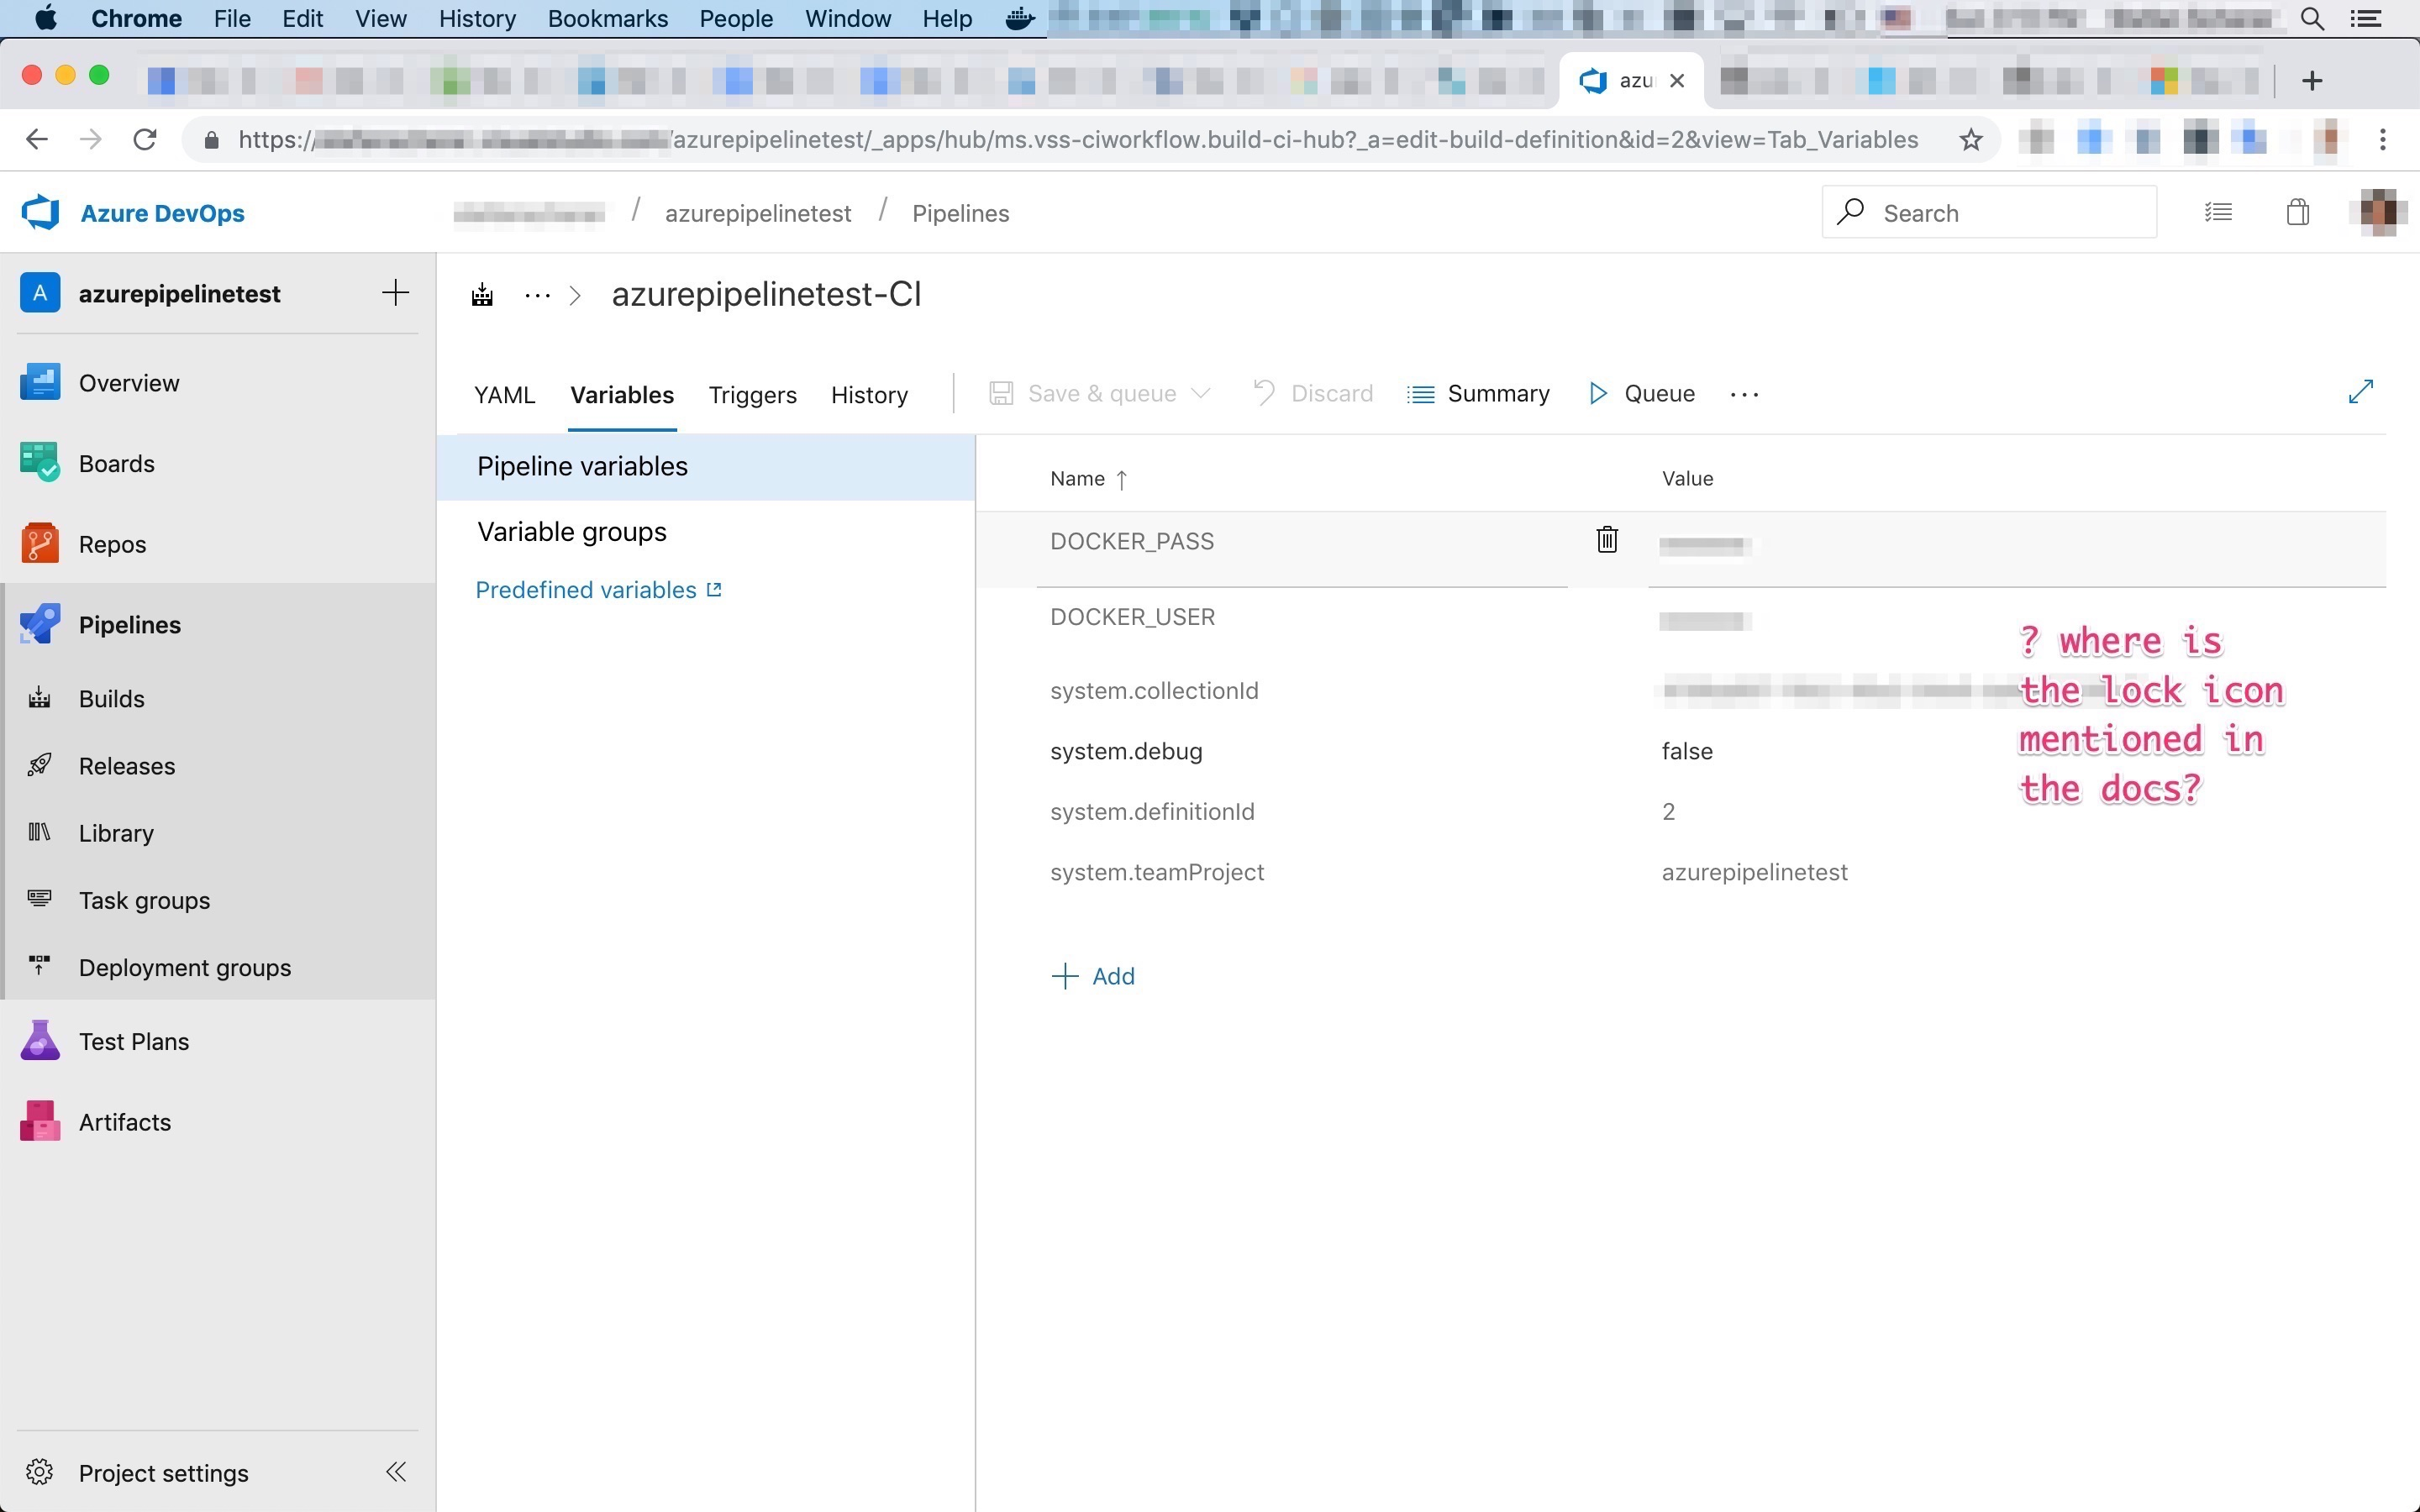 azure pipelines variables where is the lock